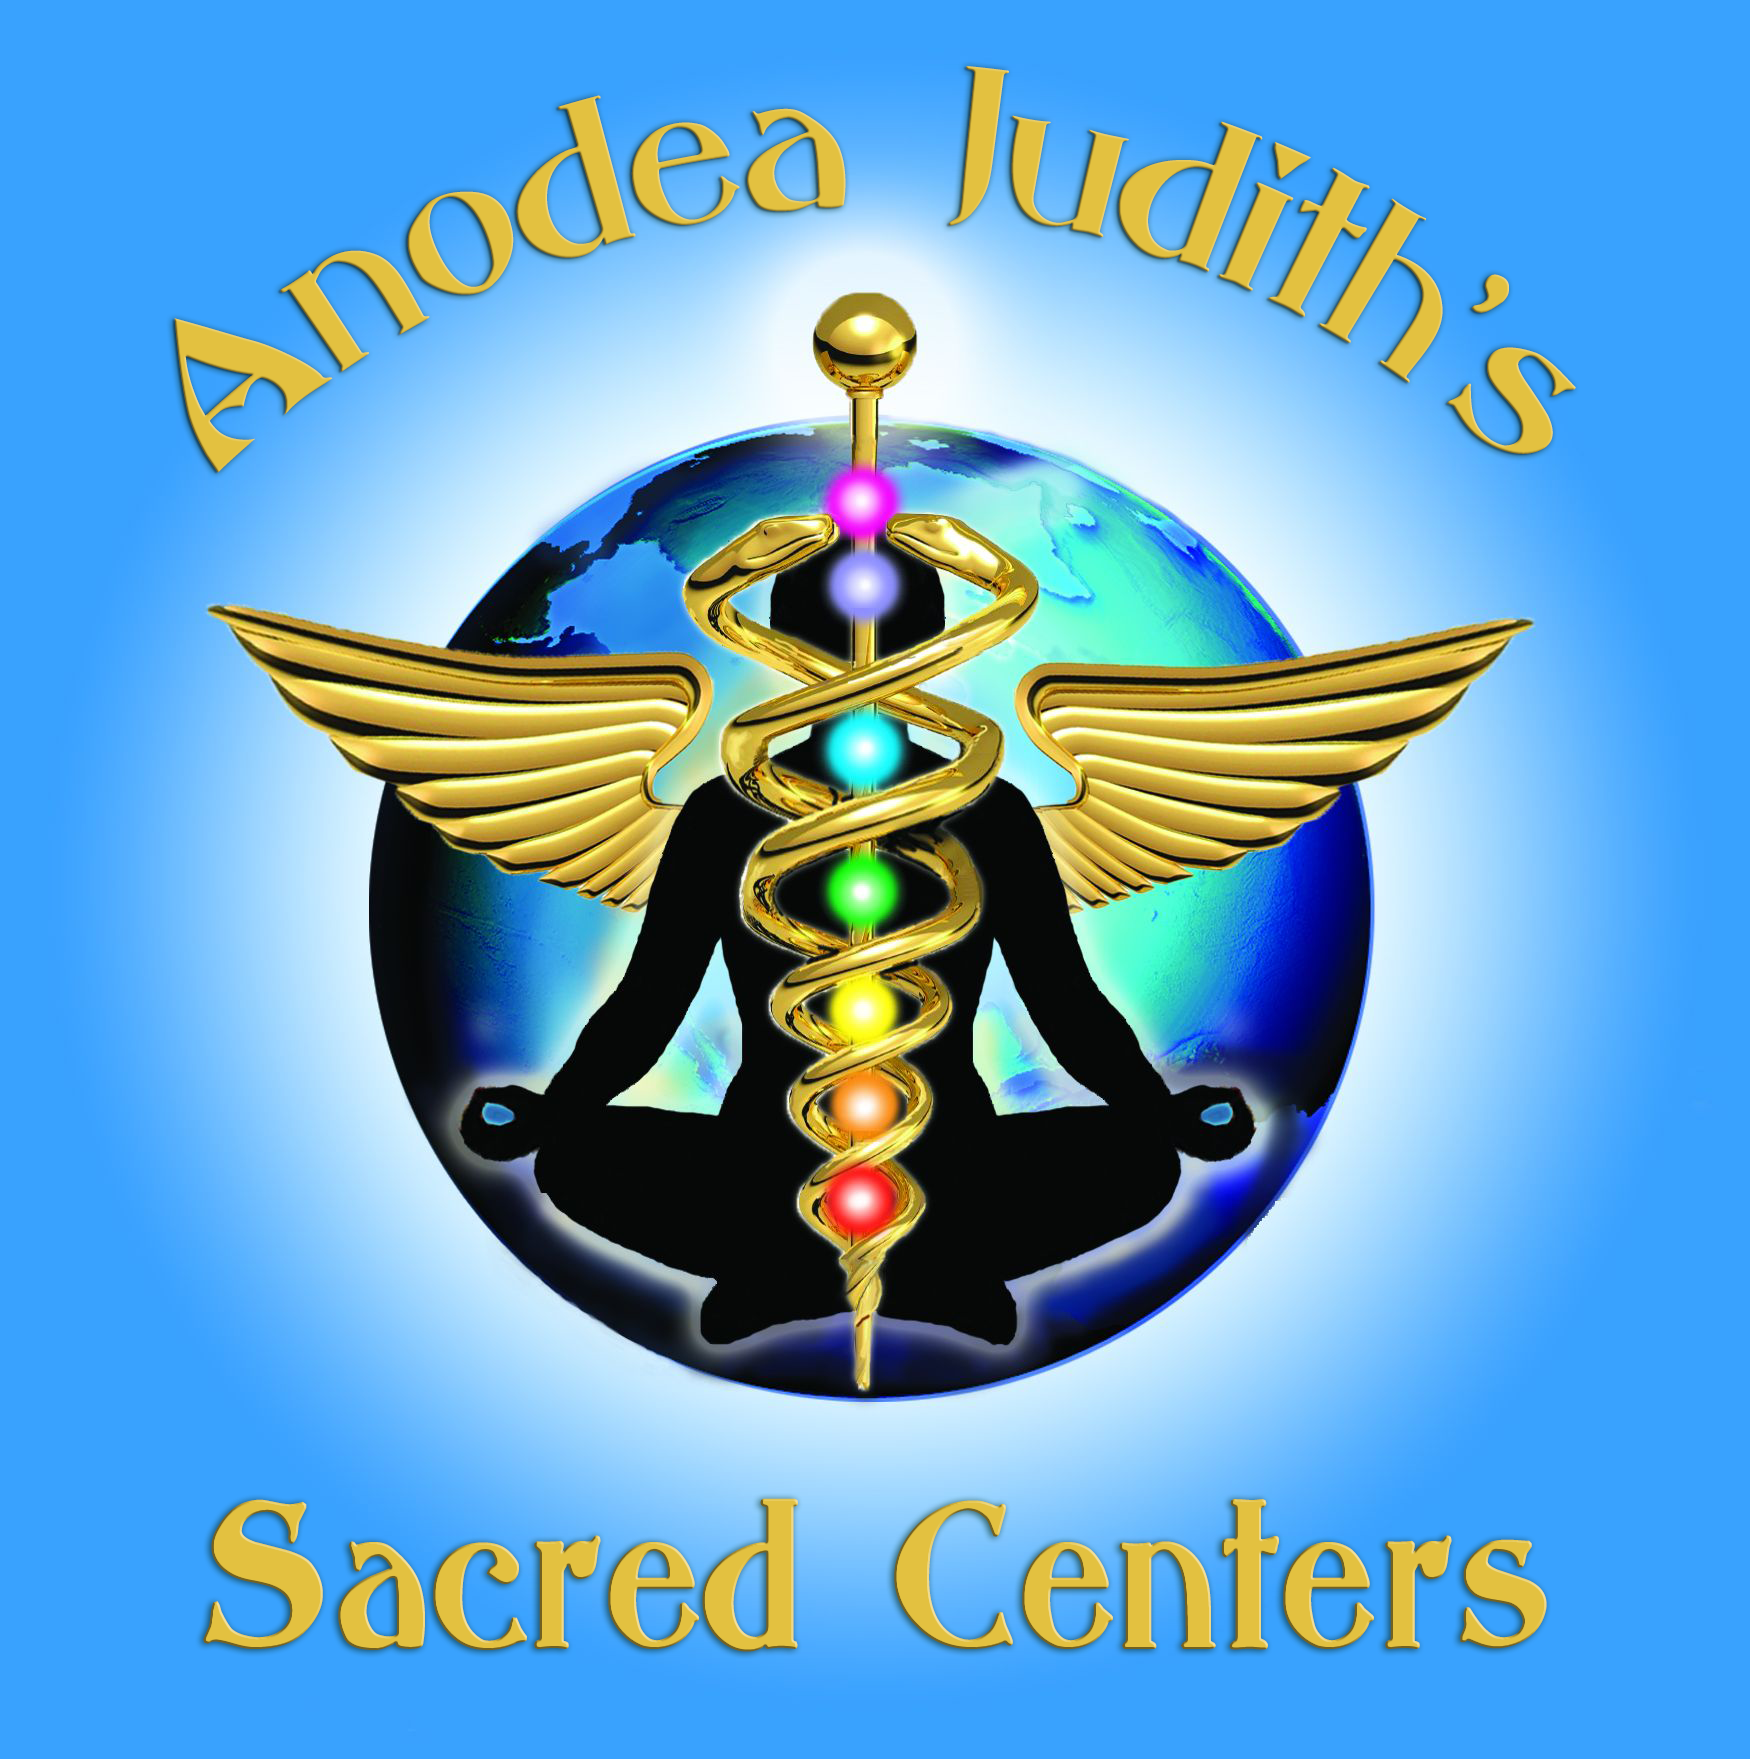 Anodea Judith's Sacred Centers is a teaching organization, founded by Anodea Judith, that uses the map of the chakra system for an embodied awakening of individual awareness and the evolution of global consciousness. We provide cutting edge information, teach live and digital workshops and classes, and provide certification training for advanced students who want to carry this work into the world.